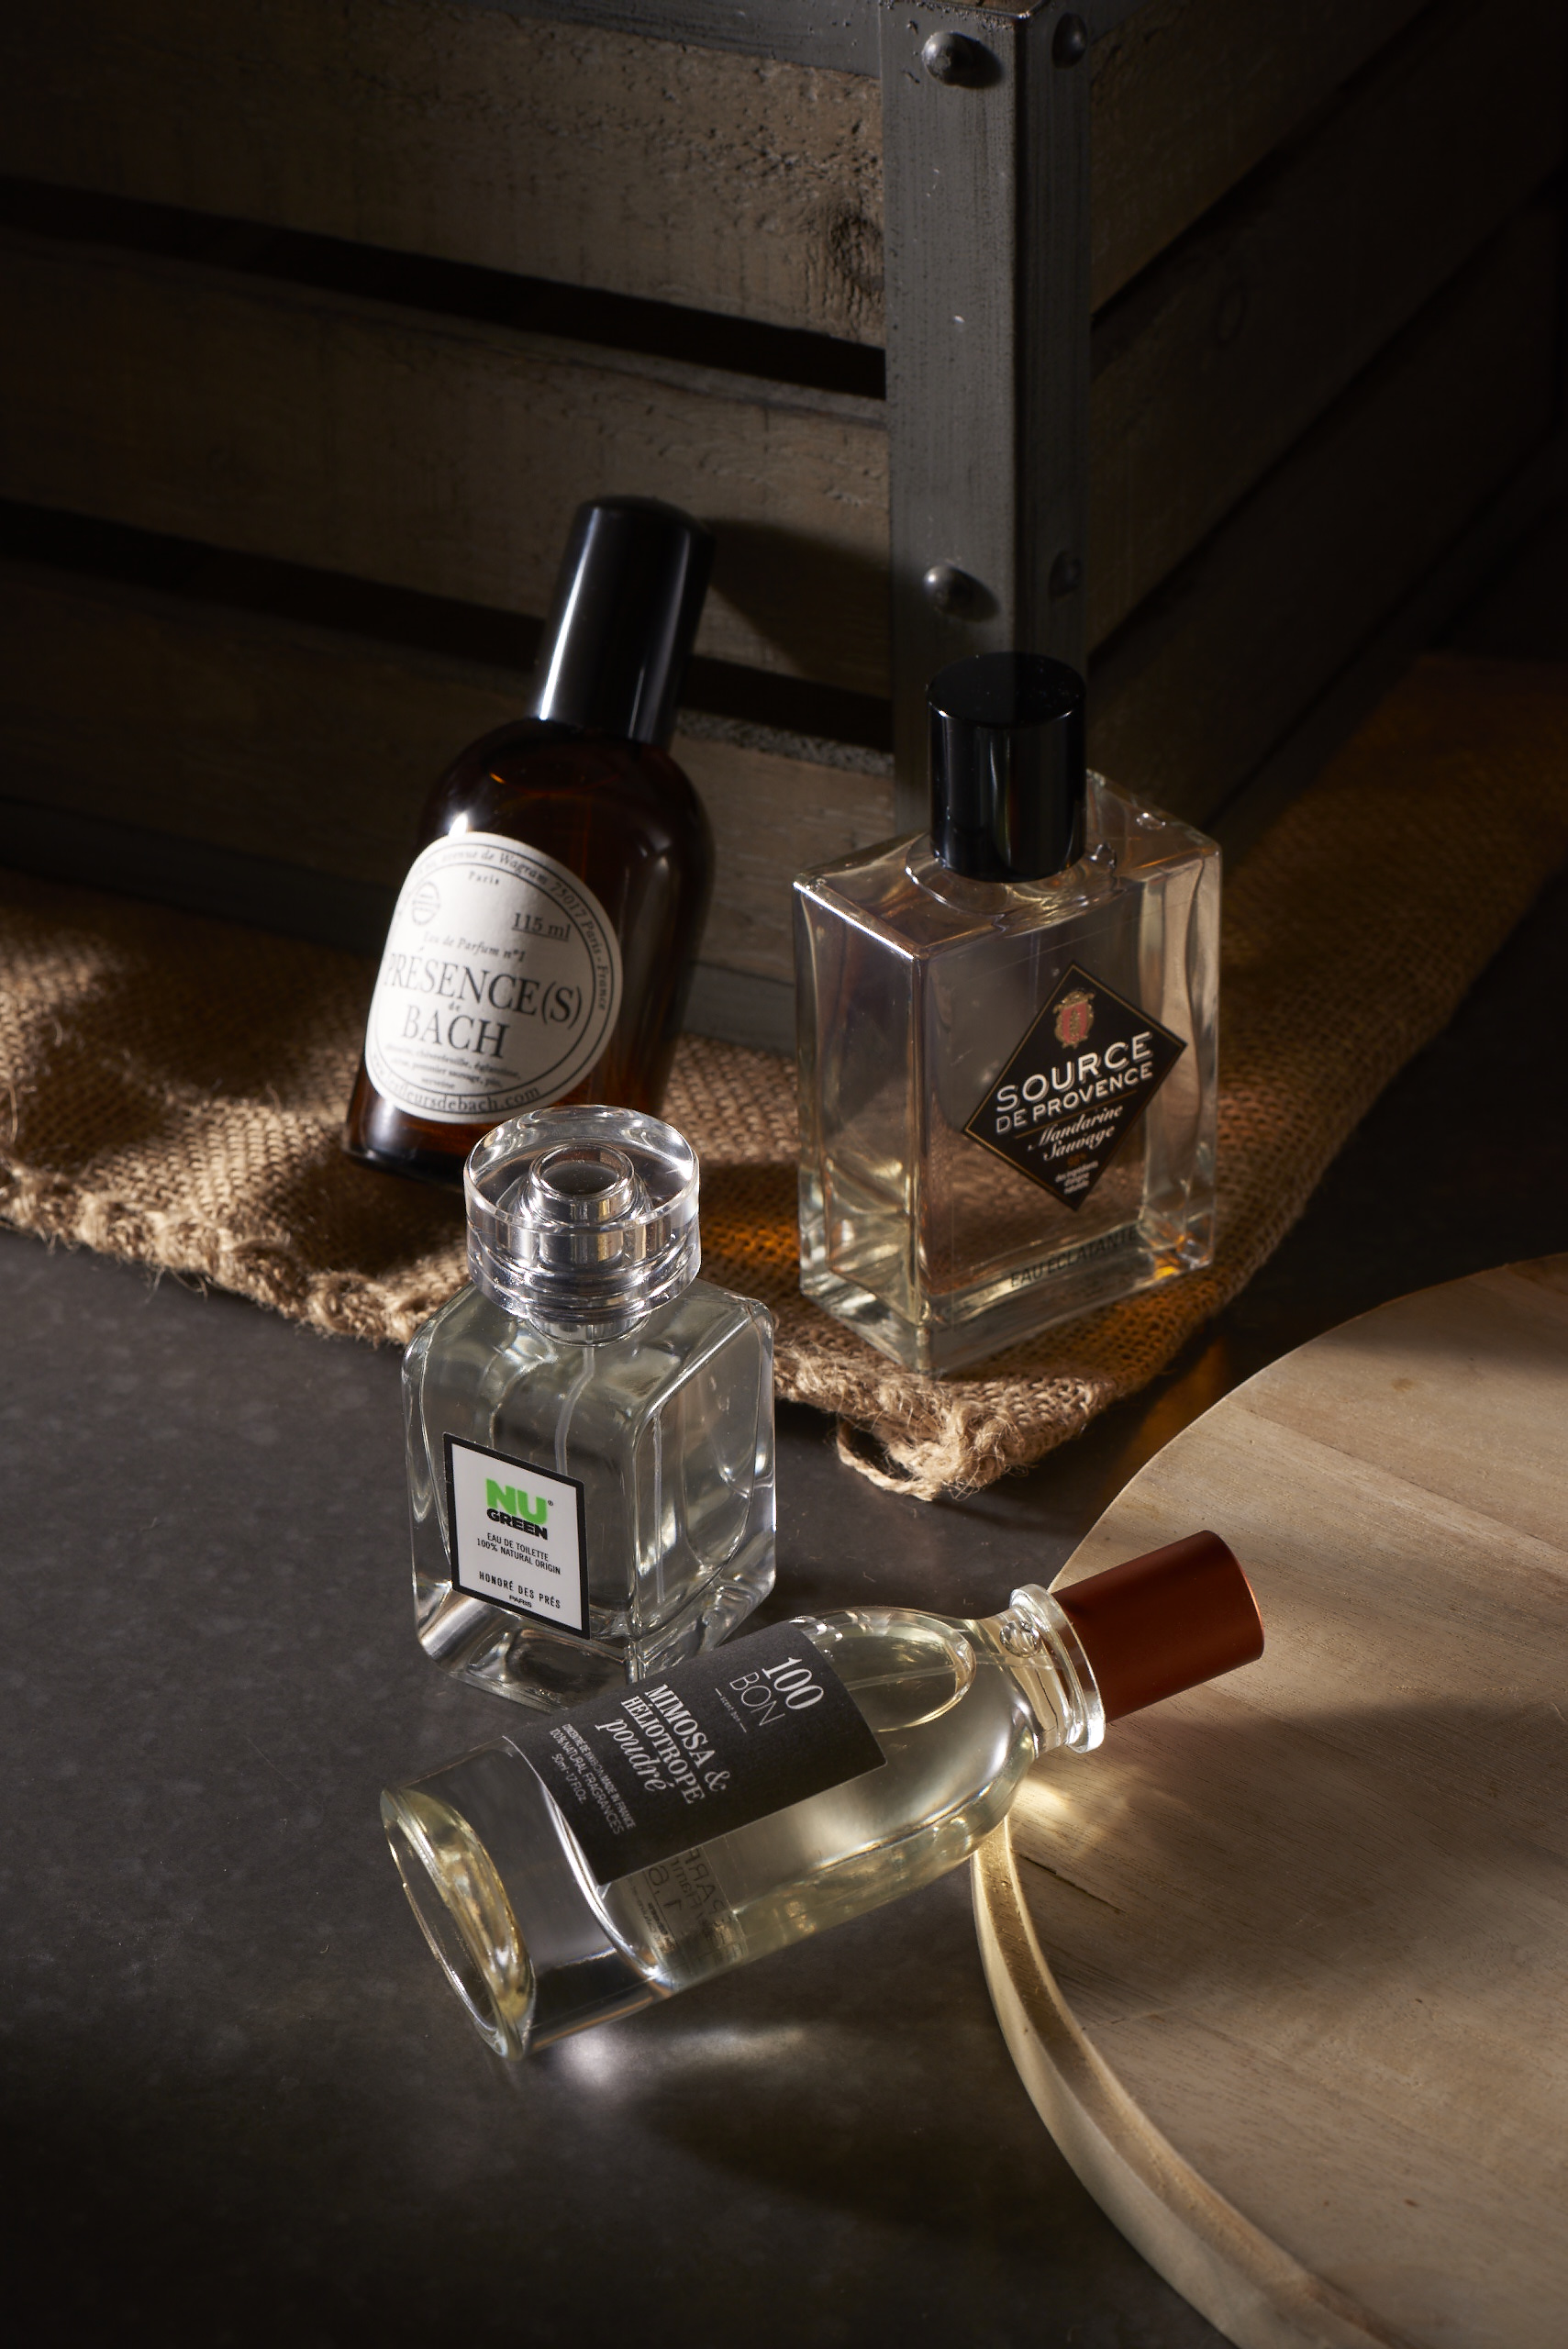 Brands such as 100 Bon, Source de Provence, Honoré des Prés and Essences de Bach blend the sensibility of fine fragrance with an all-natural ingredient palette.